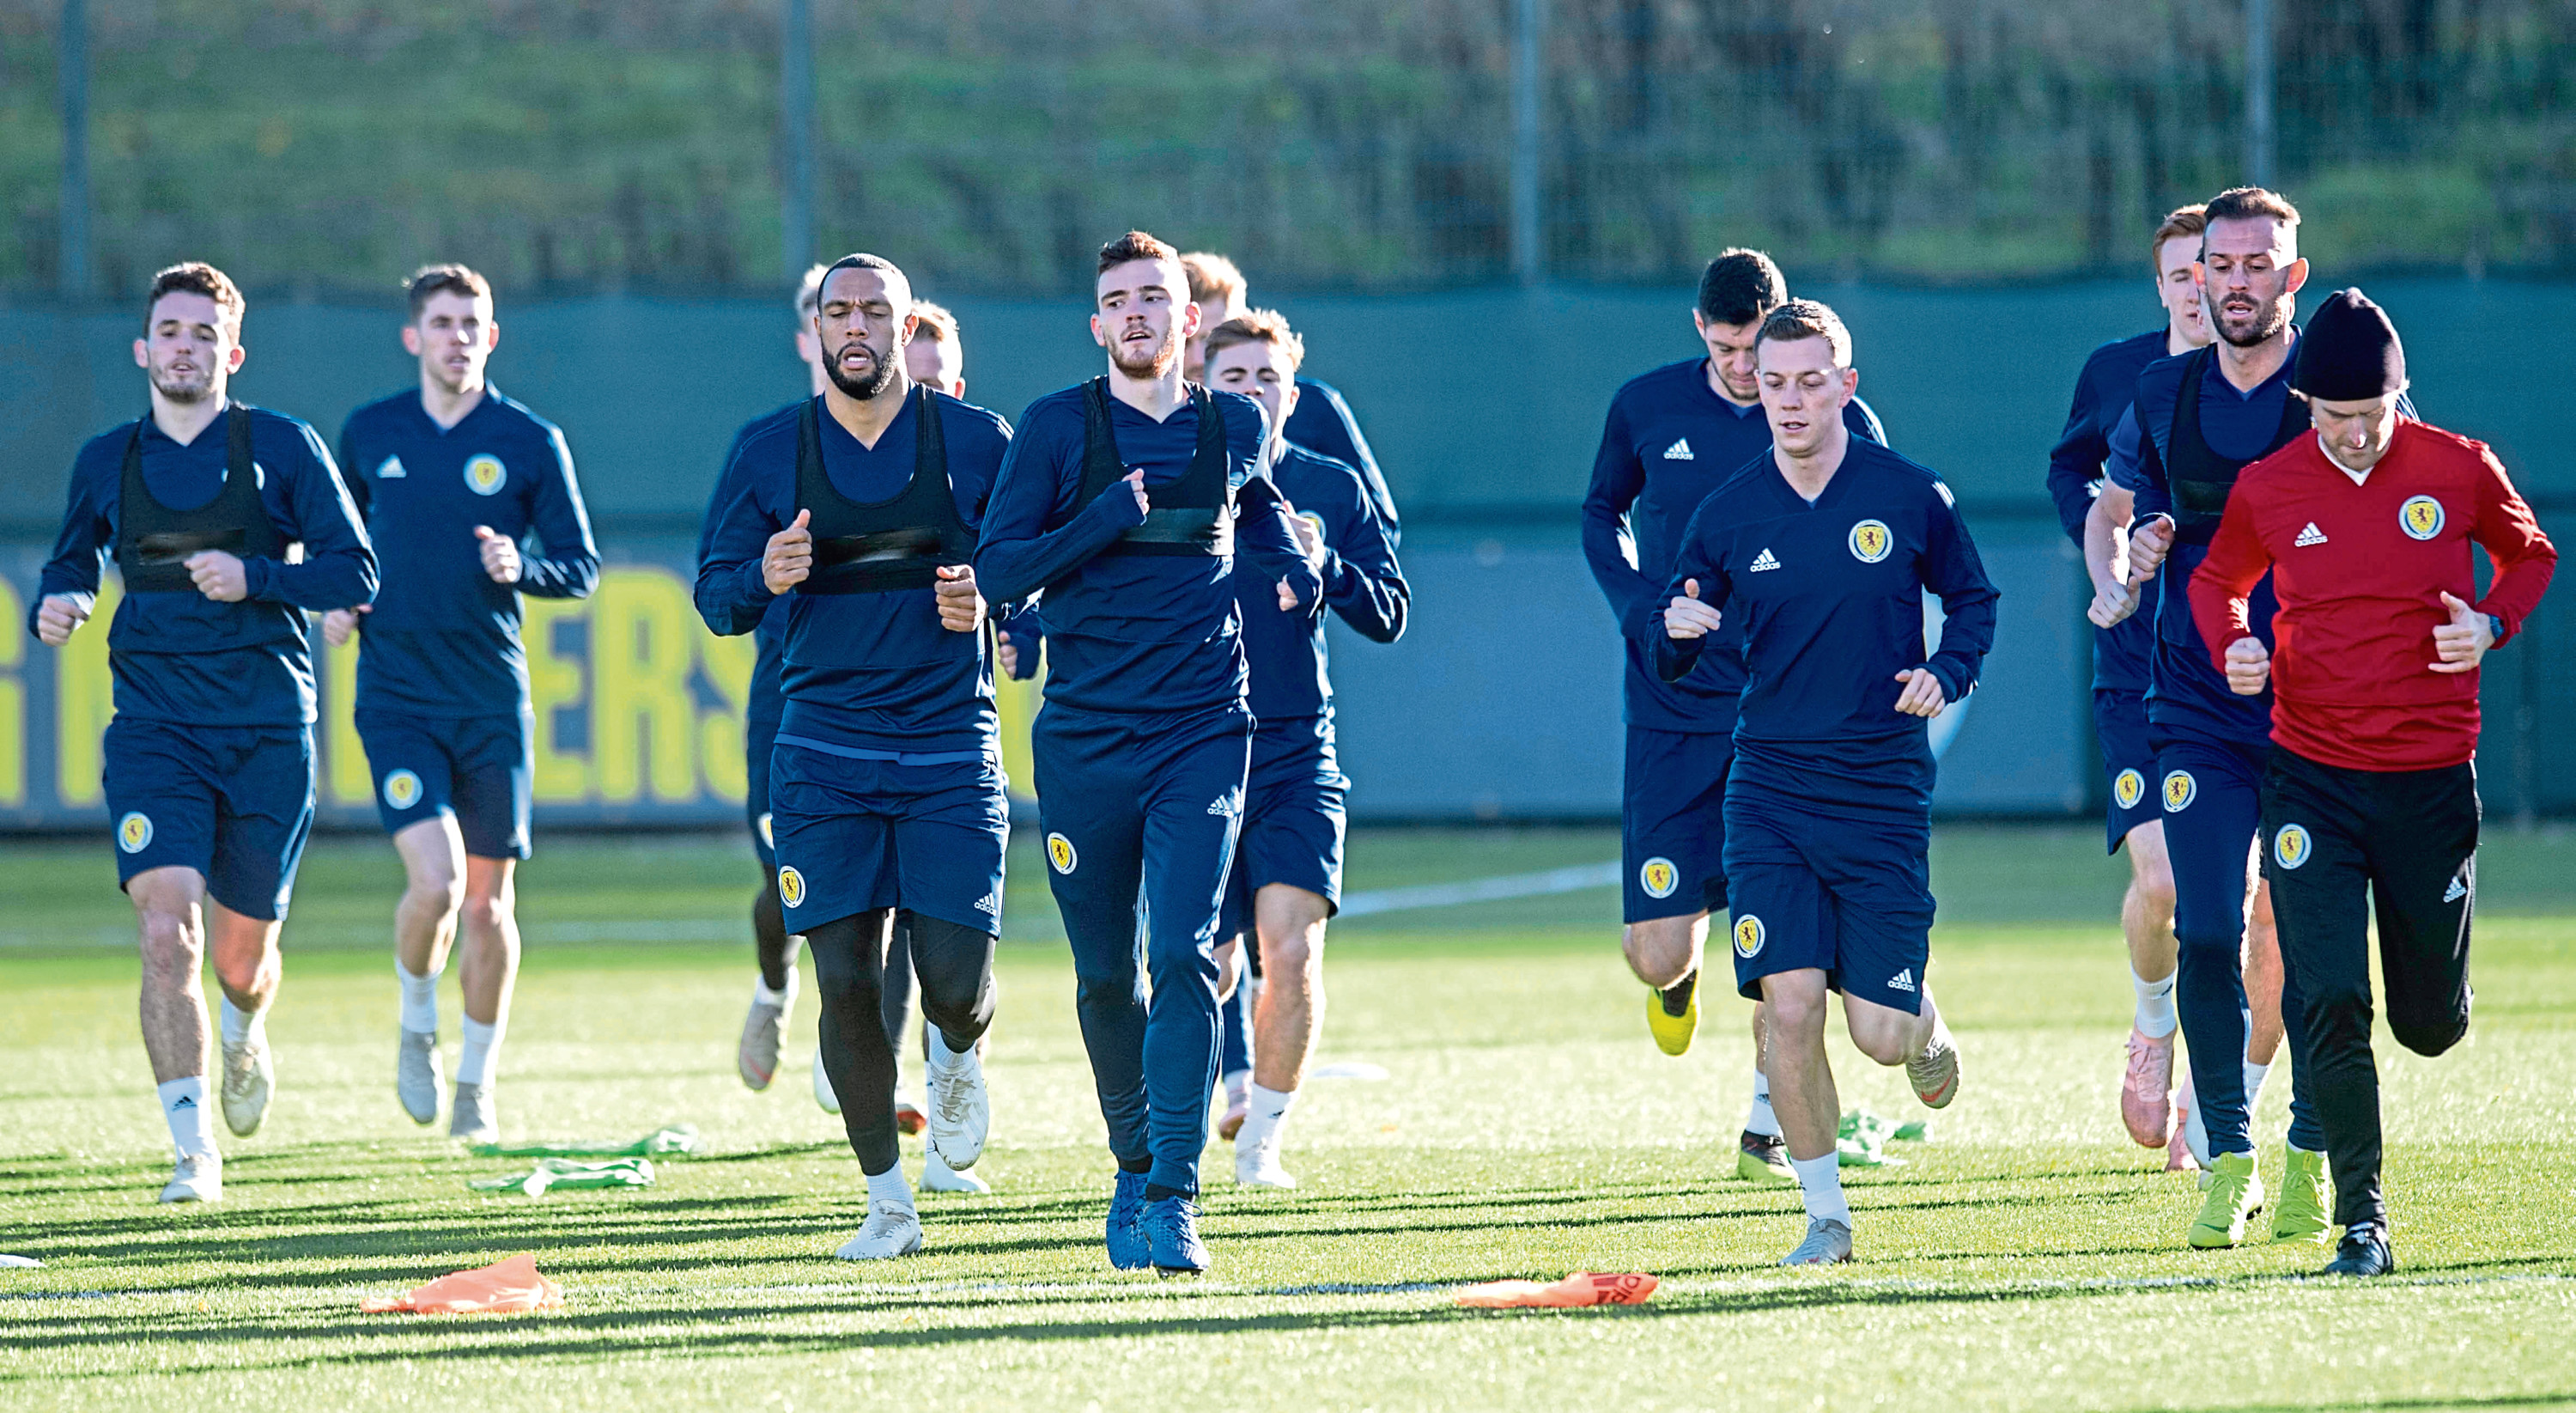 Captain Andy Robertson, centre, leads the Scotland squad during training in Edinburgh yesterday ahead of a crucial Nations League double-header against Israel and Albania.